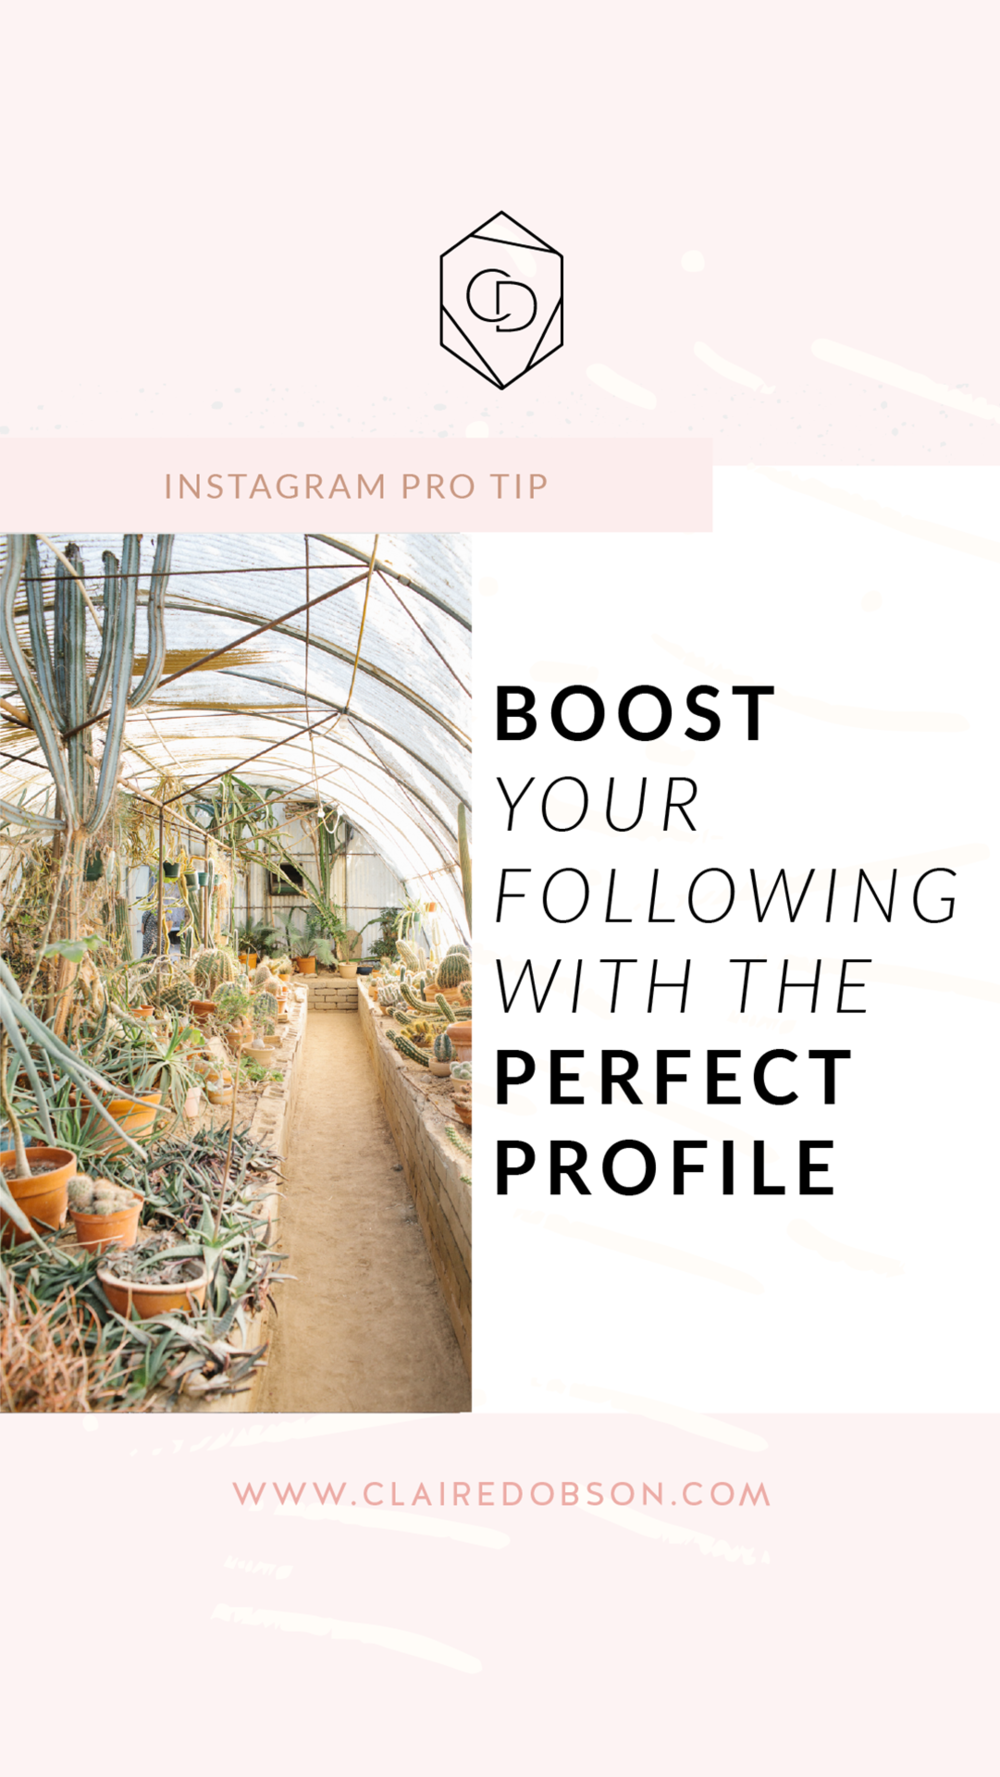 5 Quick Steps to Seriously Optimize Your Instagram Profile | You want an Instagram profile that highlights what you offer, tells them your brand story at a glance and shows that you're THE leader in your industry. These are the 5 essentials you need for an Instagram profile that shares your message and your work with a purpose.. #instagramtips #socialmediamarketing #socialmediamanagement